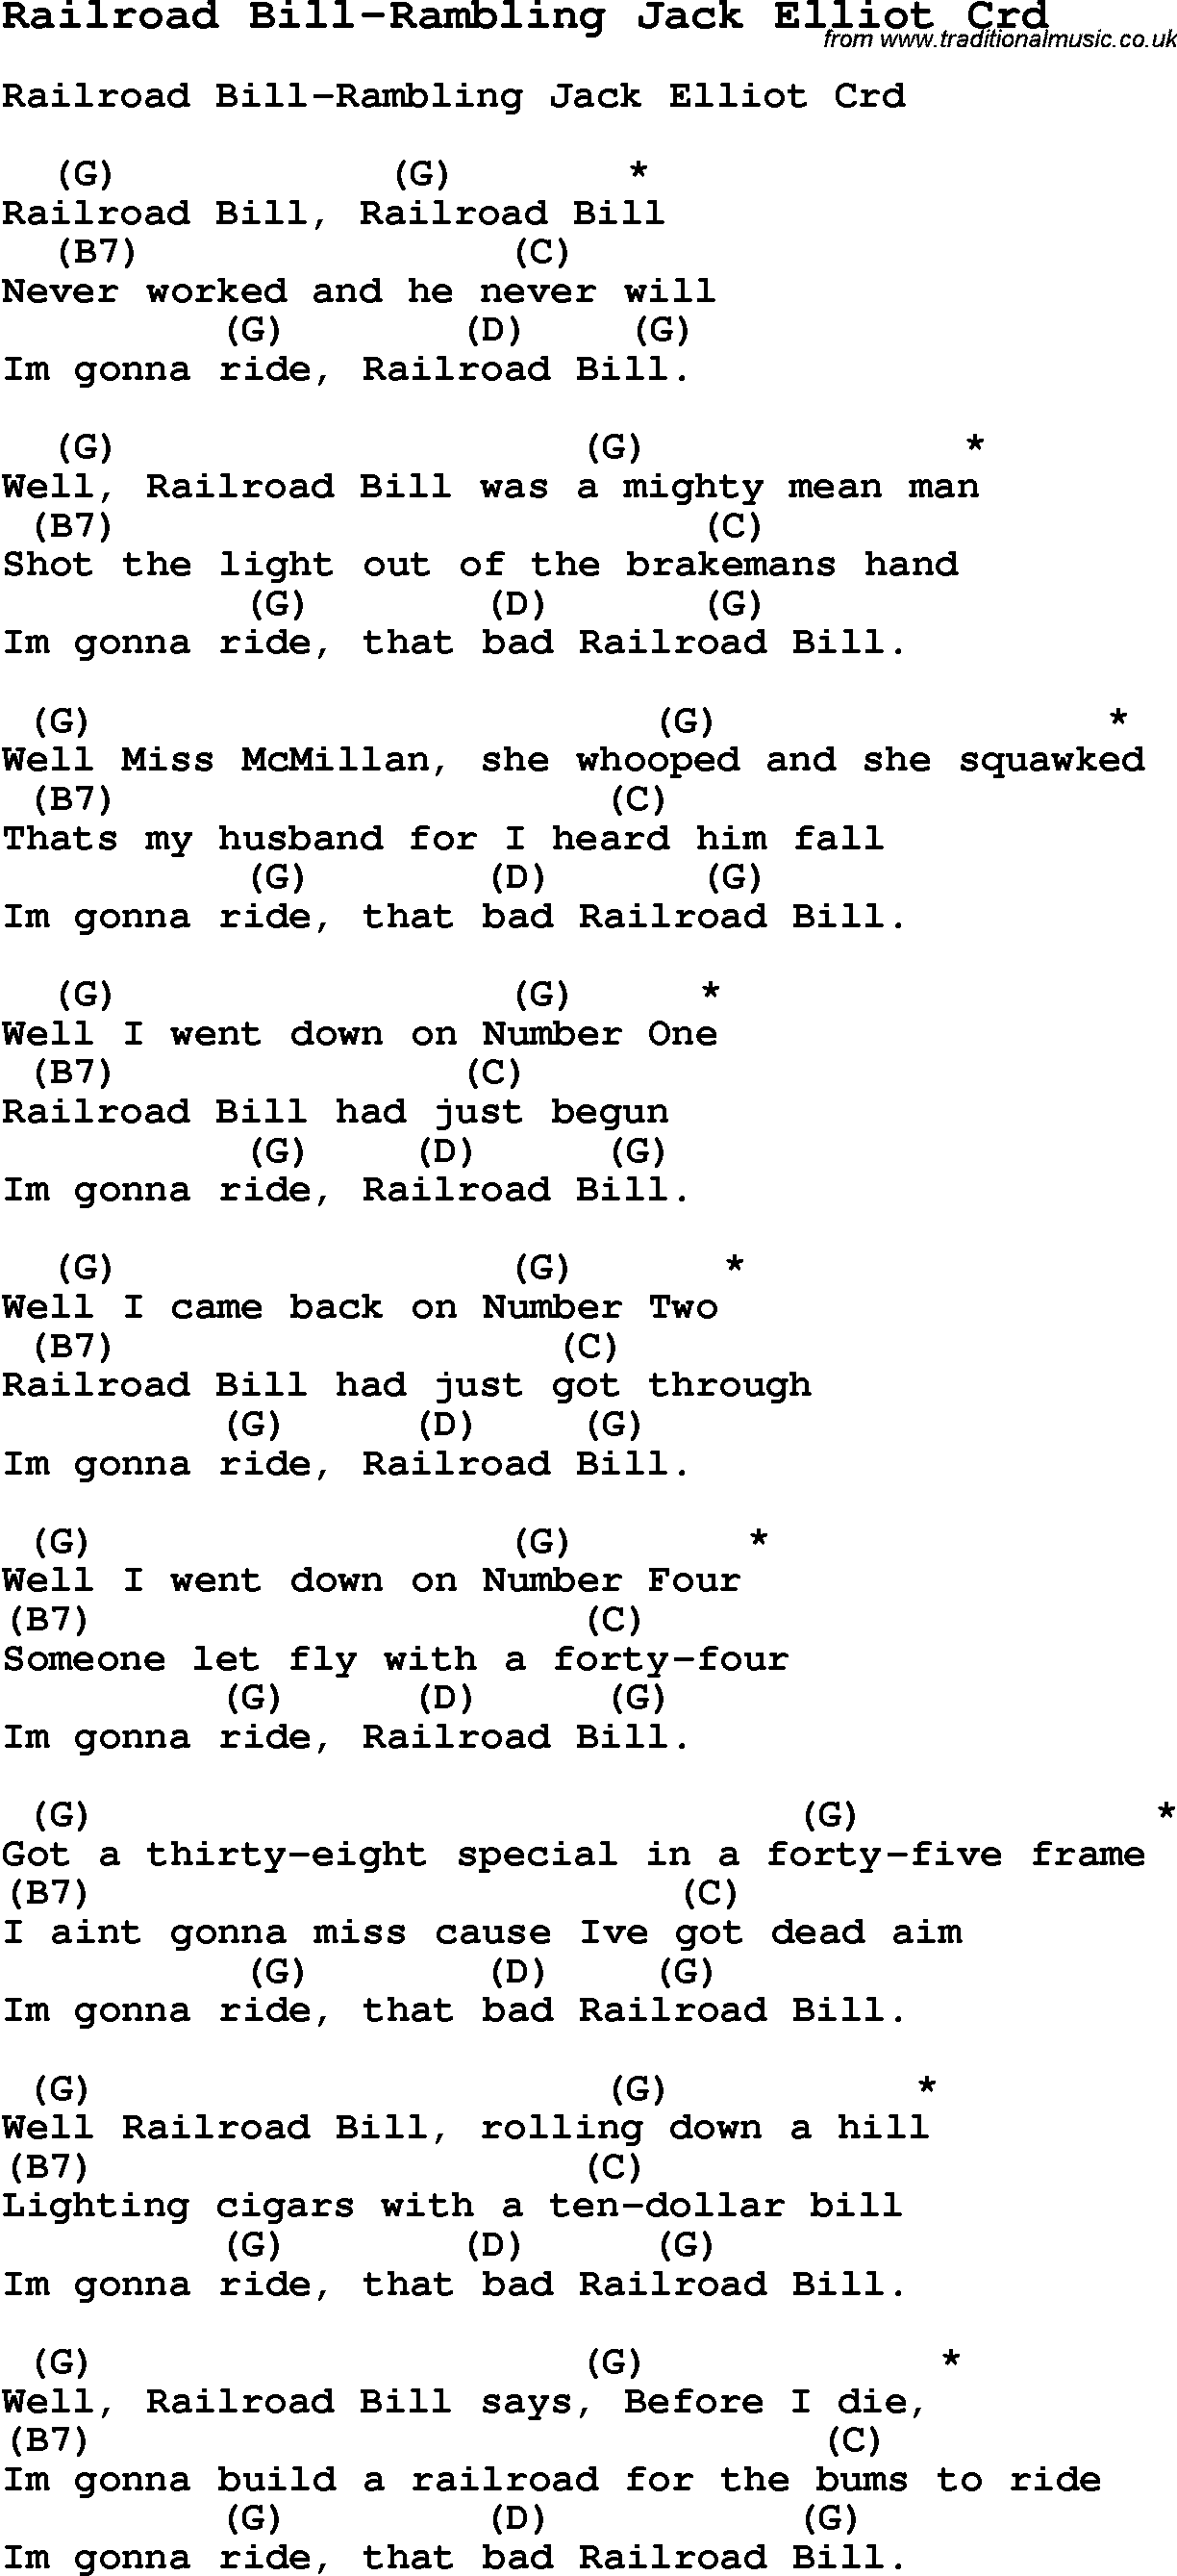 Skiffle Song Lyrics For Railroad Bill Rambling Jack Elliot With Chords For  Mandolin, Ukulele